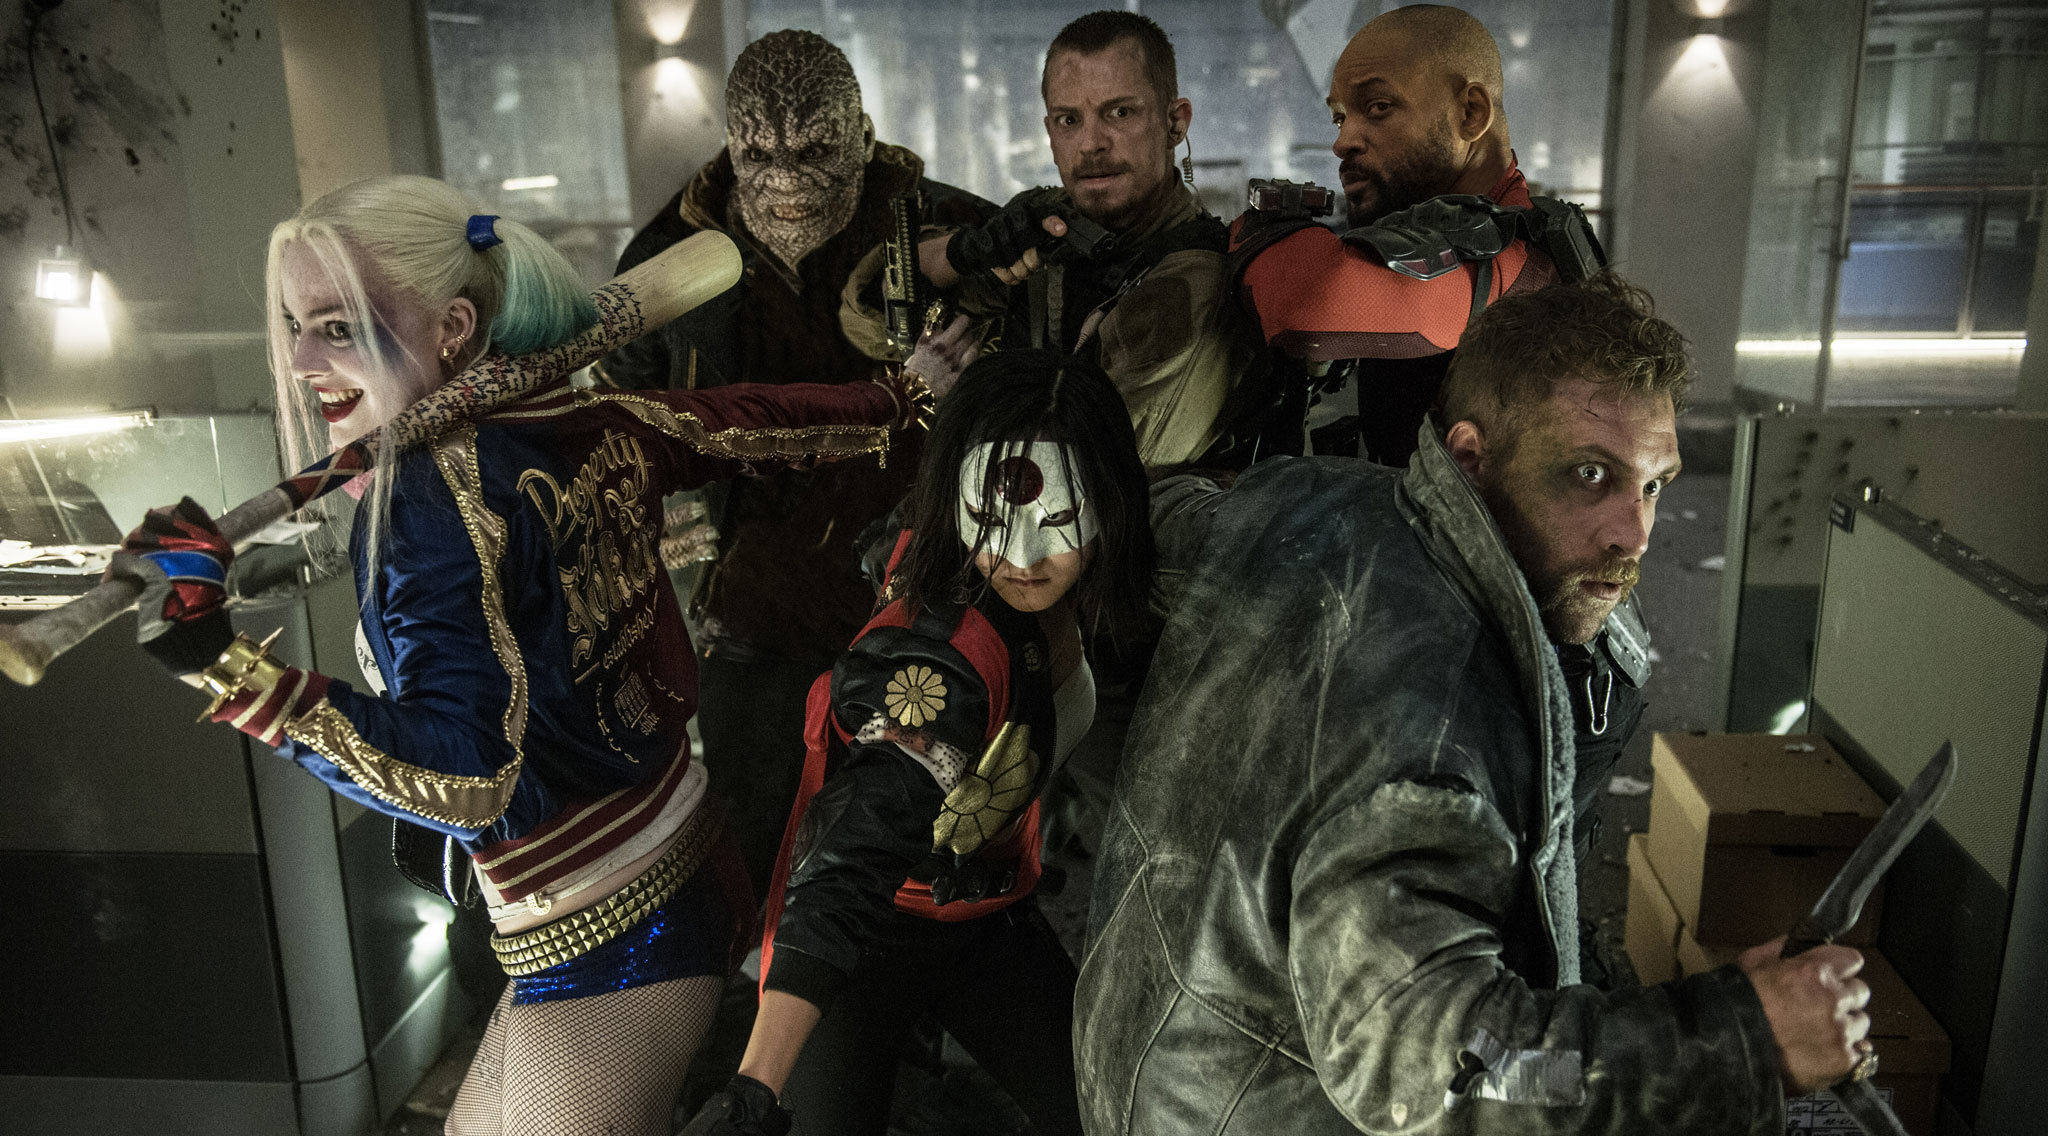 16 blockbuster movies to look forward to in 2016: Suicide Squad